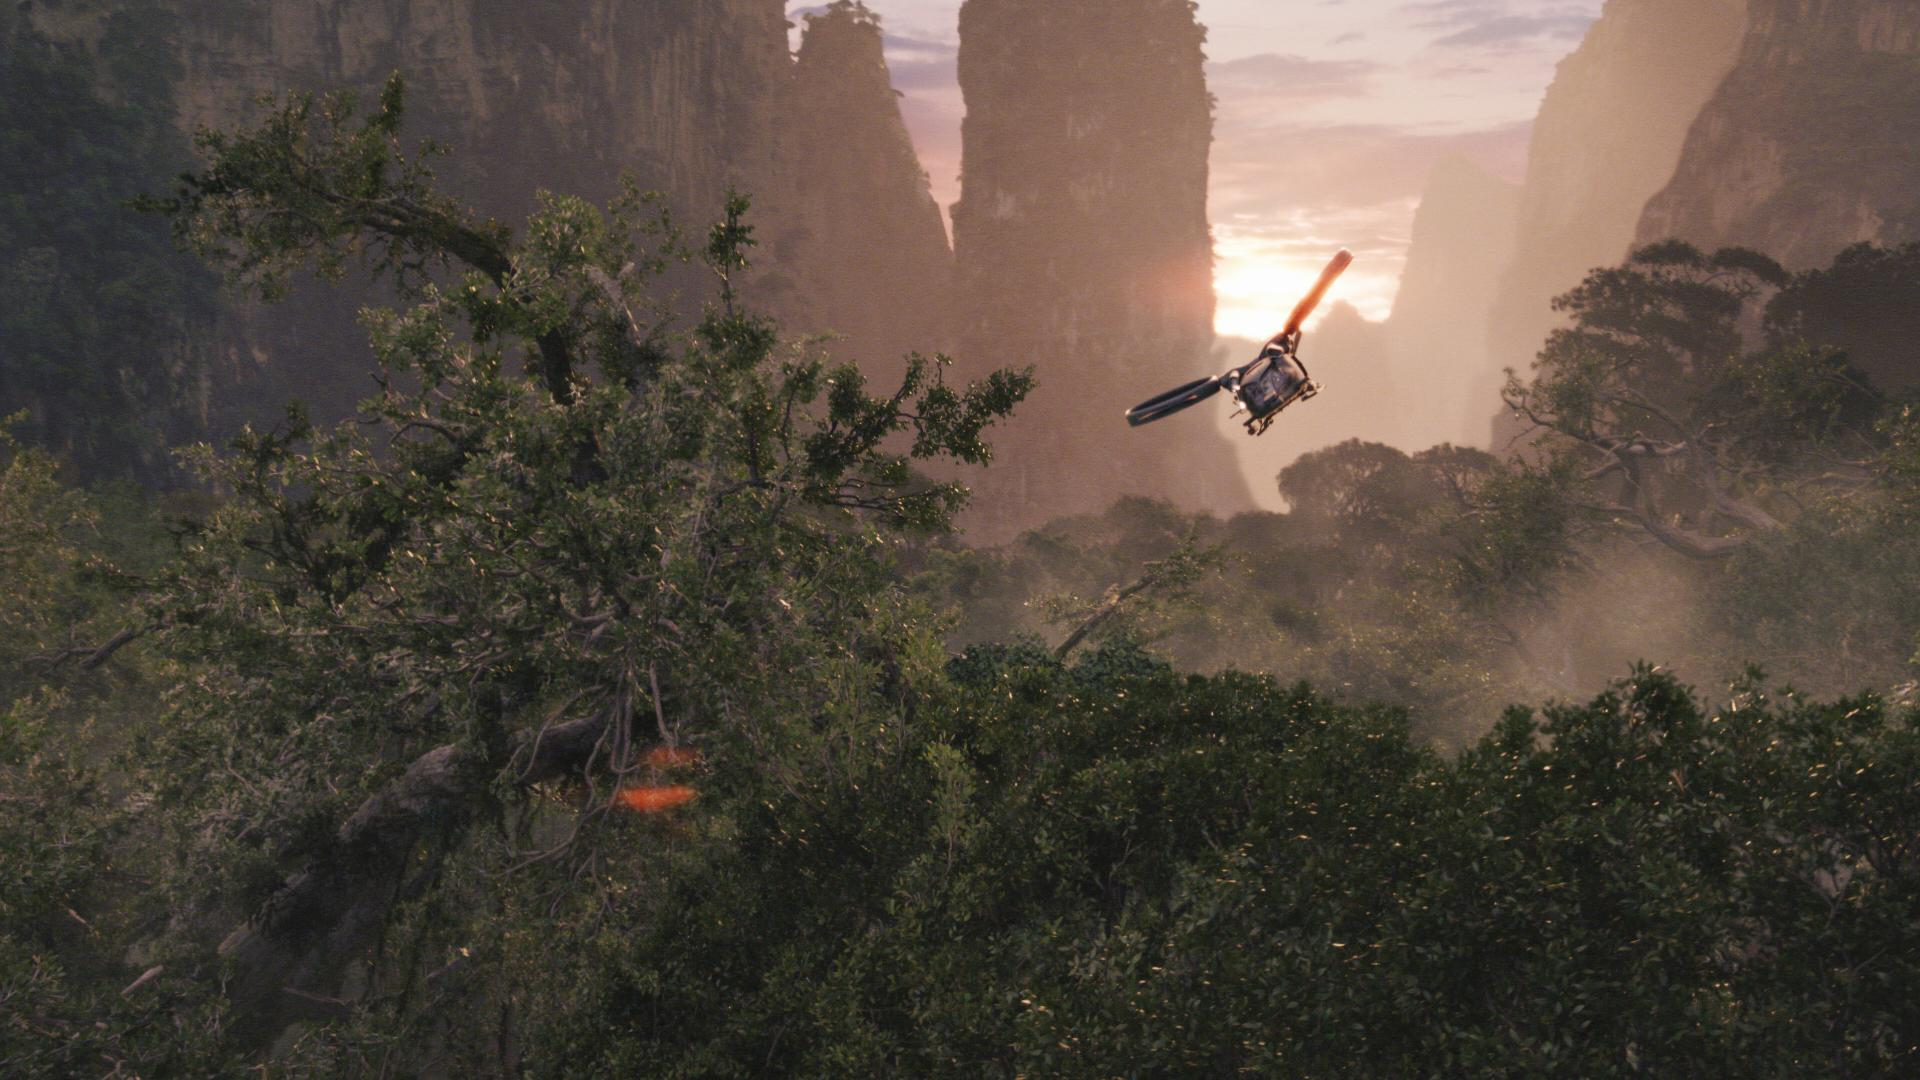 Helicopter Flying over Pandora from Avatar wallpaper   Click picture 1920x1080